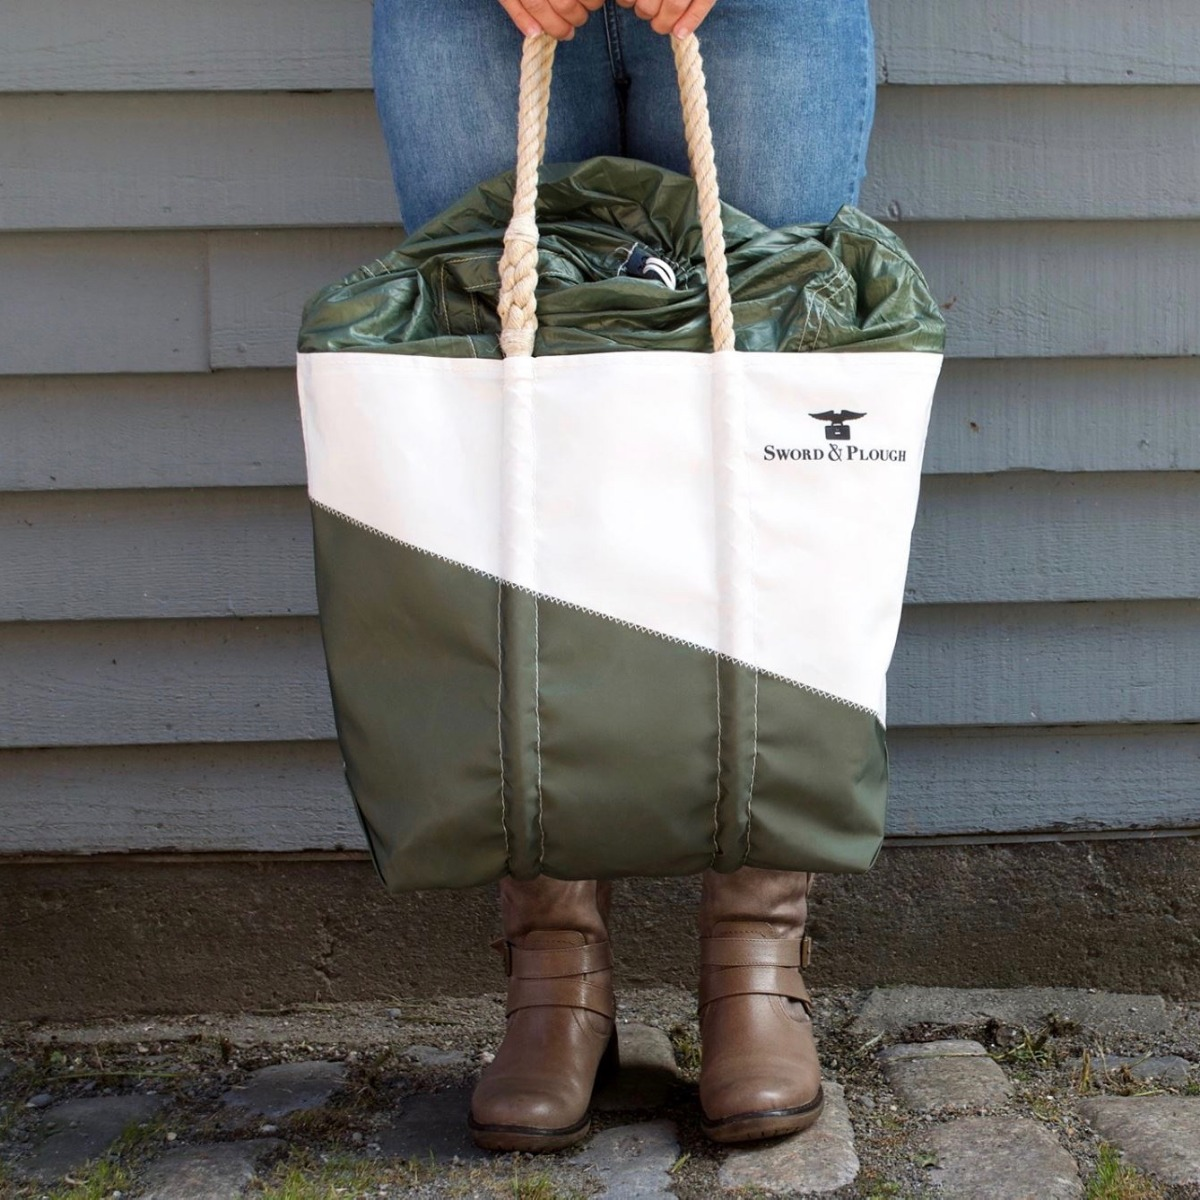 Limited edition Parachute Expandable Top Tote made in collaboration with Sword & Plough